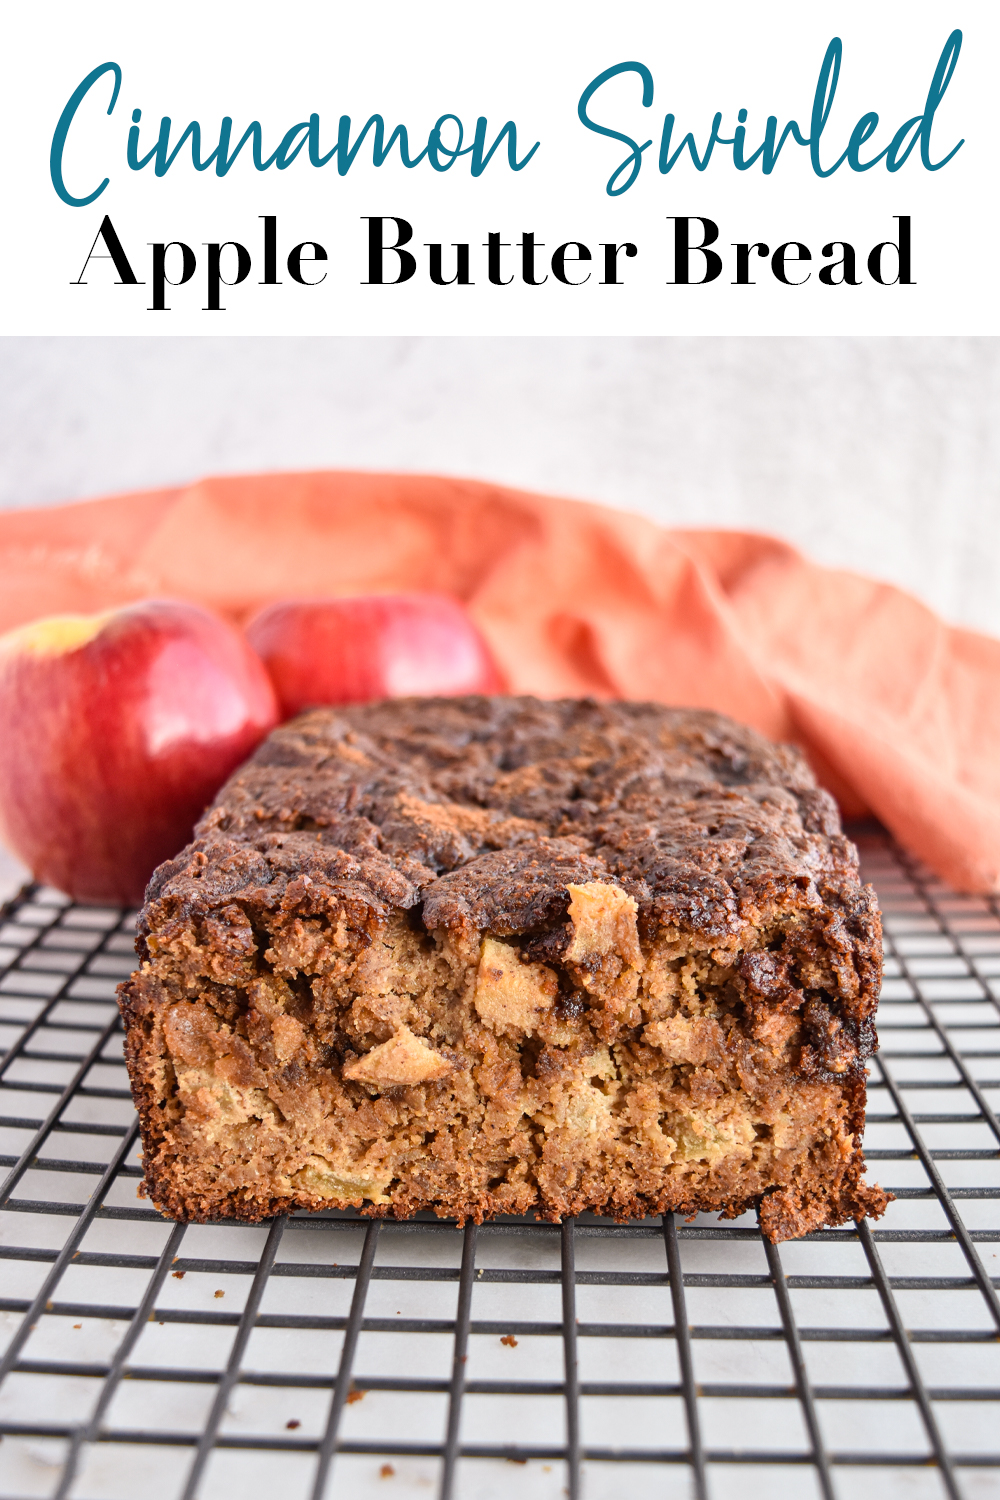 Cinnamon apple butter bread